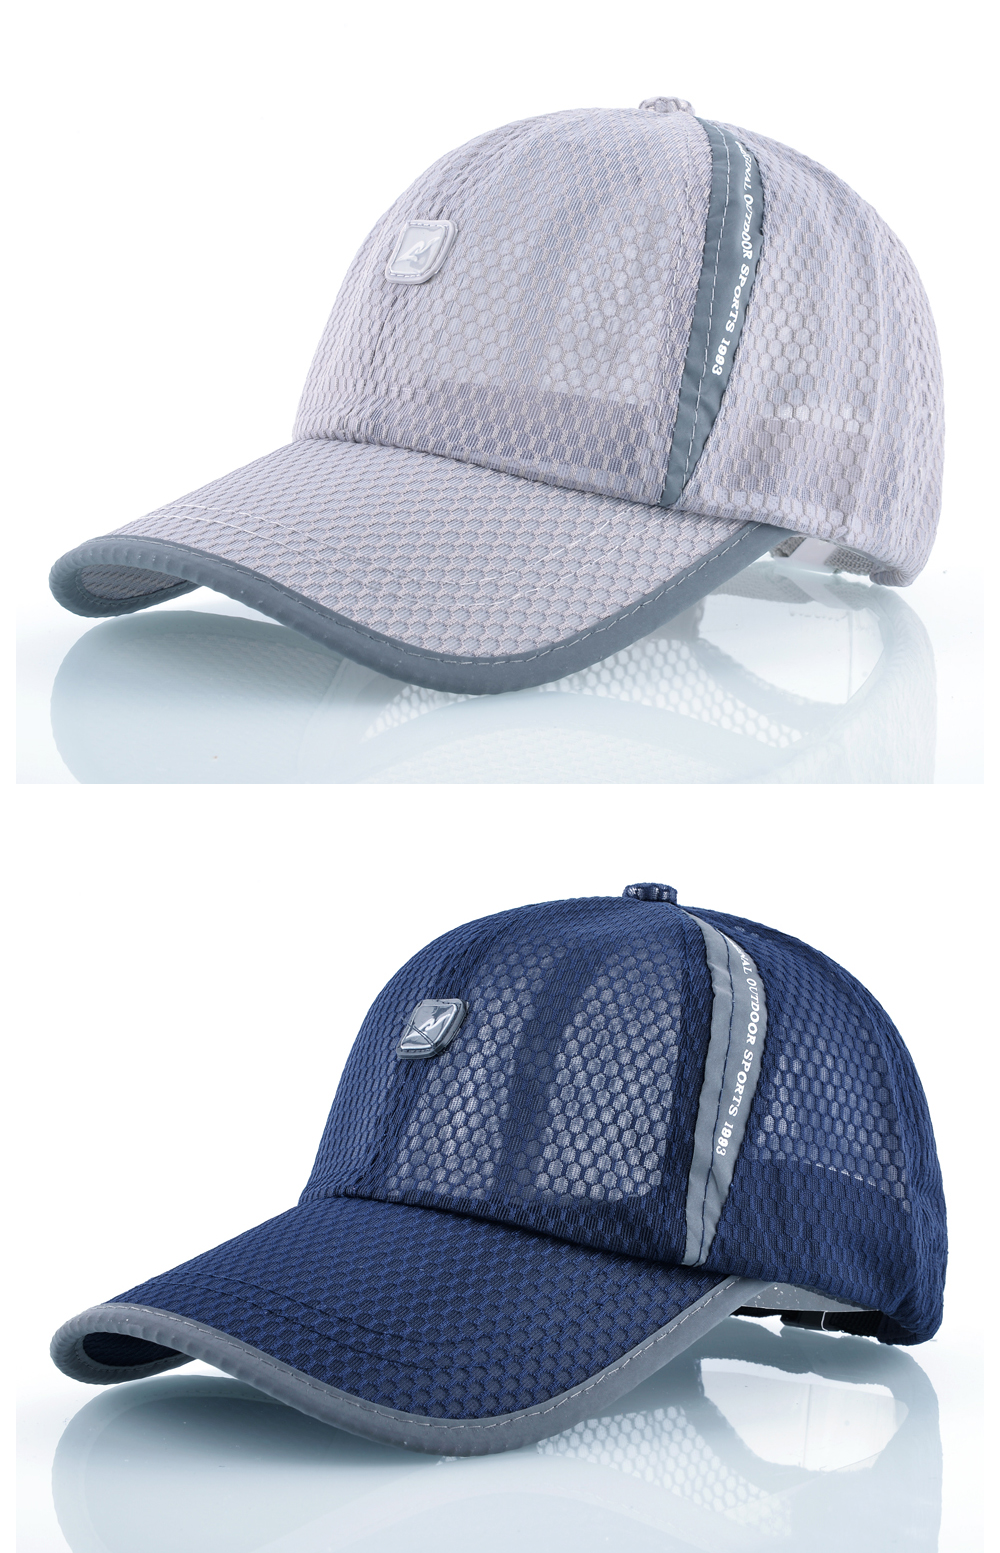 Open Mesh Breathable Baseball Cap - Gray Cap and Blue Cap Front Angle Detail Views